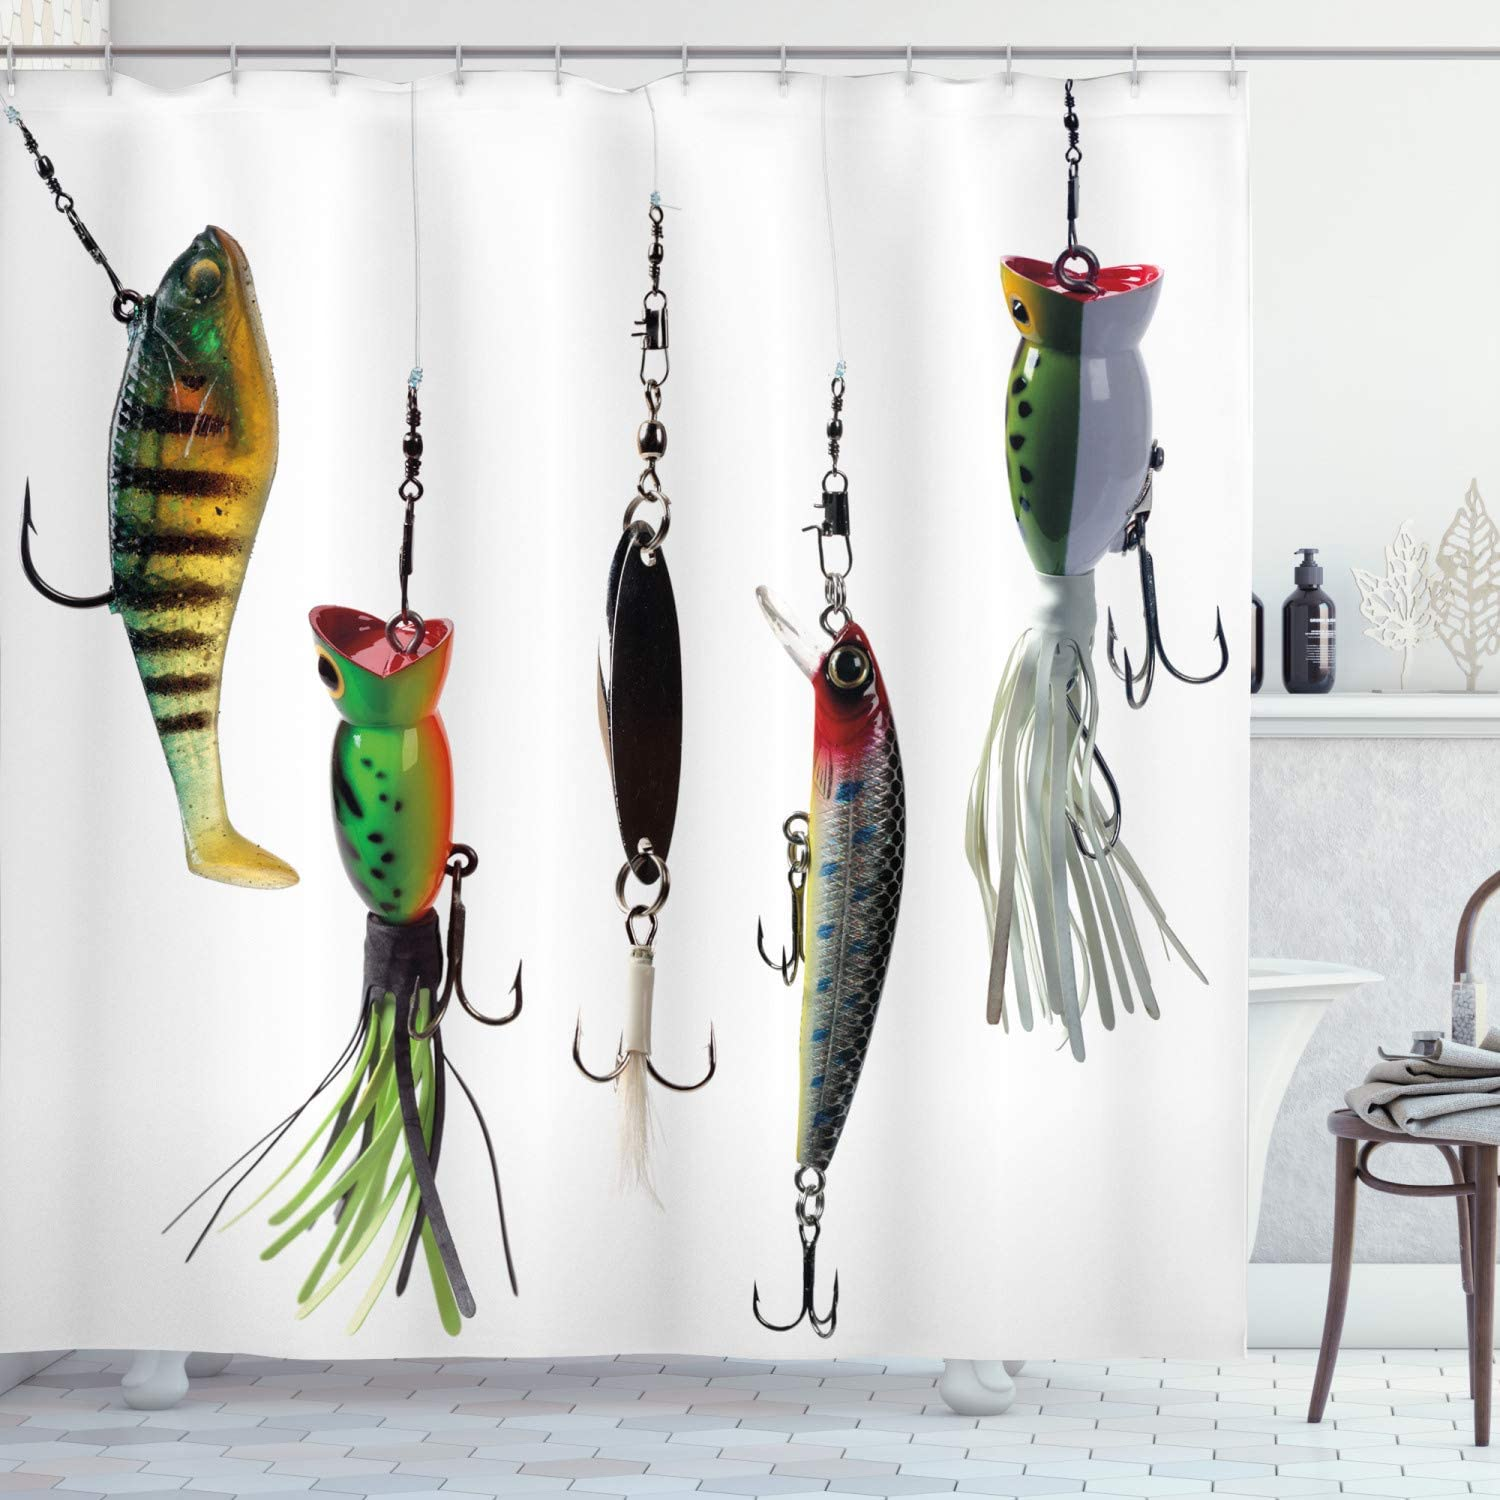 Ambesonne Fishing Shower Curtain, Various Type of Fishing Baits Hobby Leisure Passtime Sports Hooks Catch Elements, Cloth Fabric Bathroom Decor Set with Hooks, 84